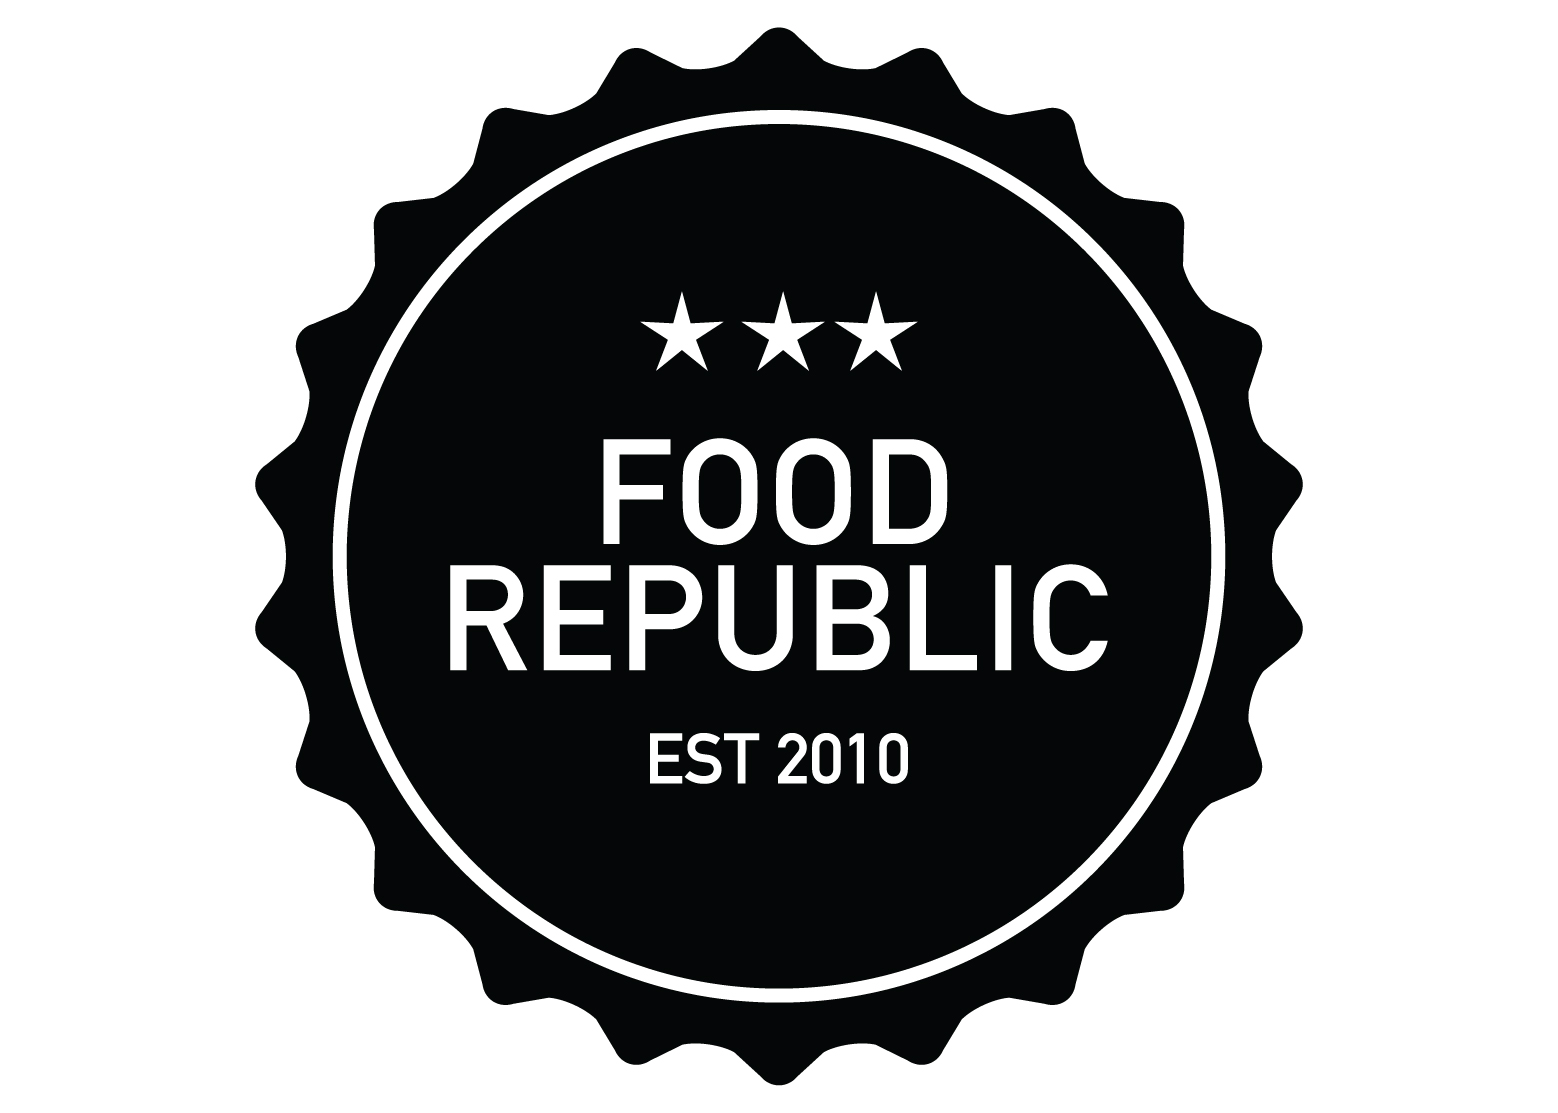 FOOD REPUBLIC - Food Republic explores the culture of food through stories, interviews, global conversations, and experiences. This is the site for people who want to eat and drink well, and to live smart. The site aims to be the global hub for news and information about the new culture of food across a multitude of media platforms, for a vibrant community of people who put food and drink at the center of their lives.InstagramFacebook